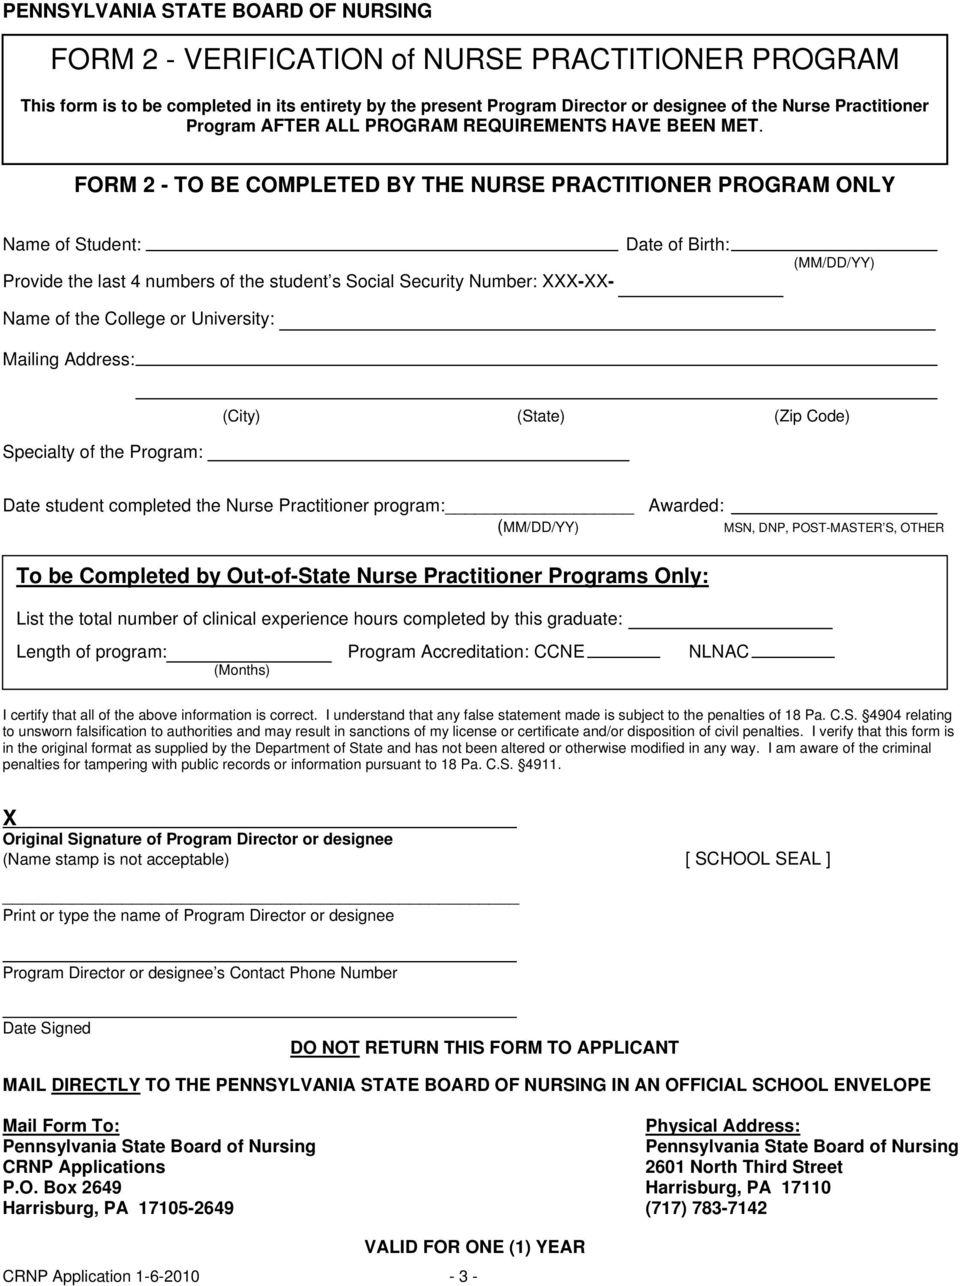 FORM 2 - TO BE COMPLETED BY THE NURSE PRACTITIONER PROGRAM ONLY Name of Student: Provide the last 4 numbers of the student s Social Security Number: XXX-XX- Name of the College or University: Mailing